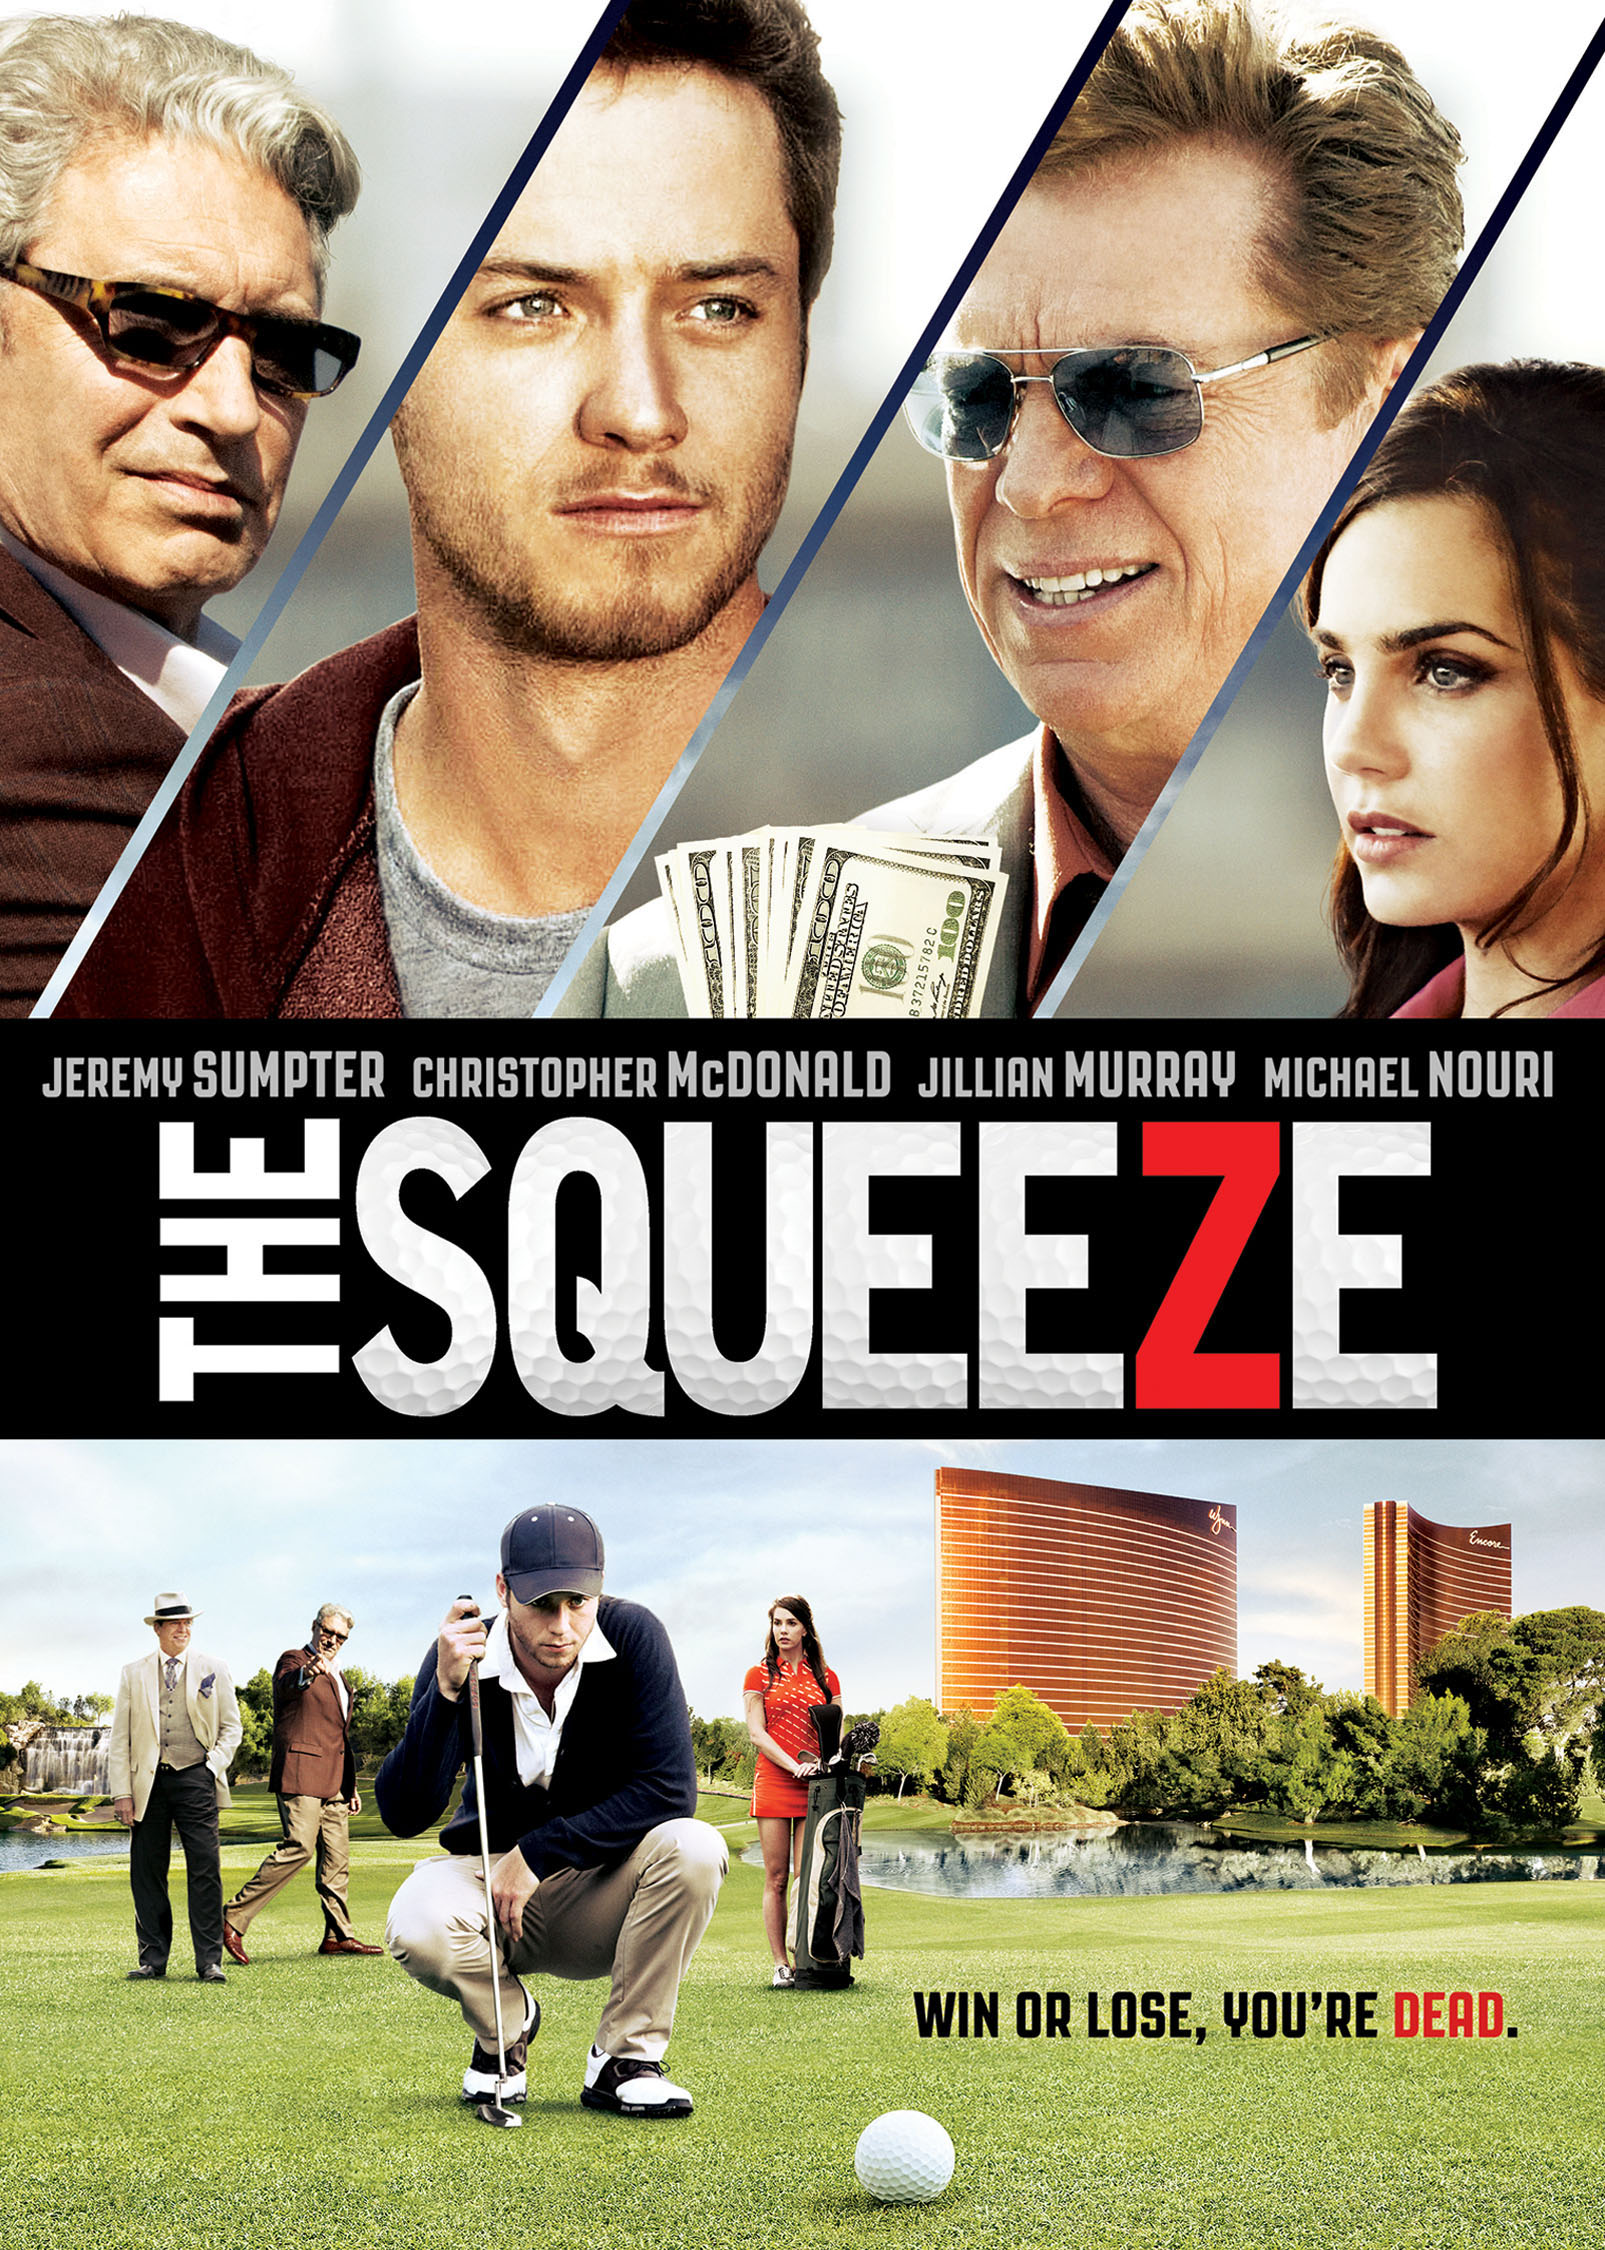 'The Squeeze,' a movie about a young golfer who gets caught up in the world of illegal gambling, hits theaters, VOD and iTunes April 17.